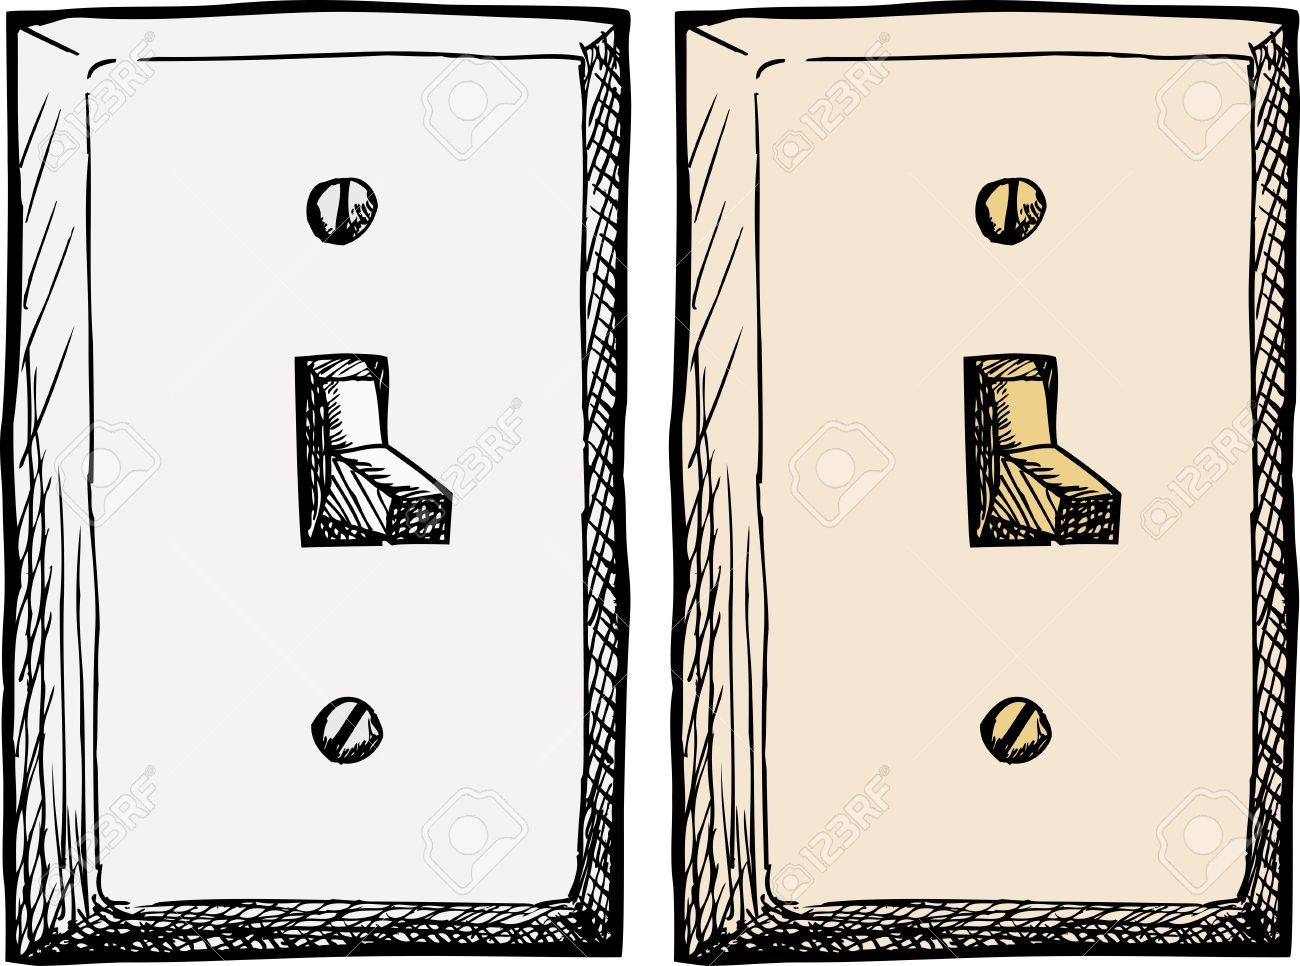 Drawing Of A Single Wall Light Switch At An Angle Royalty Free.